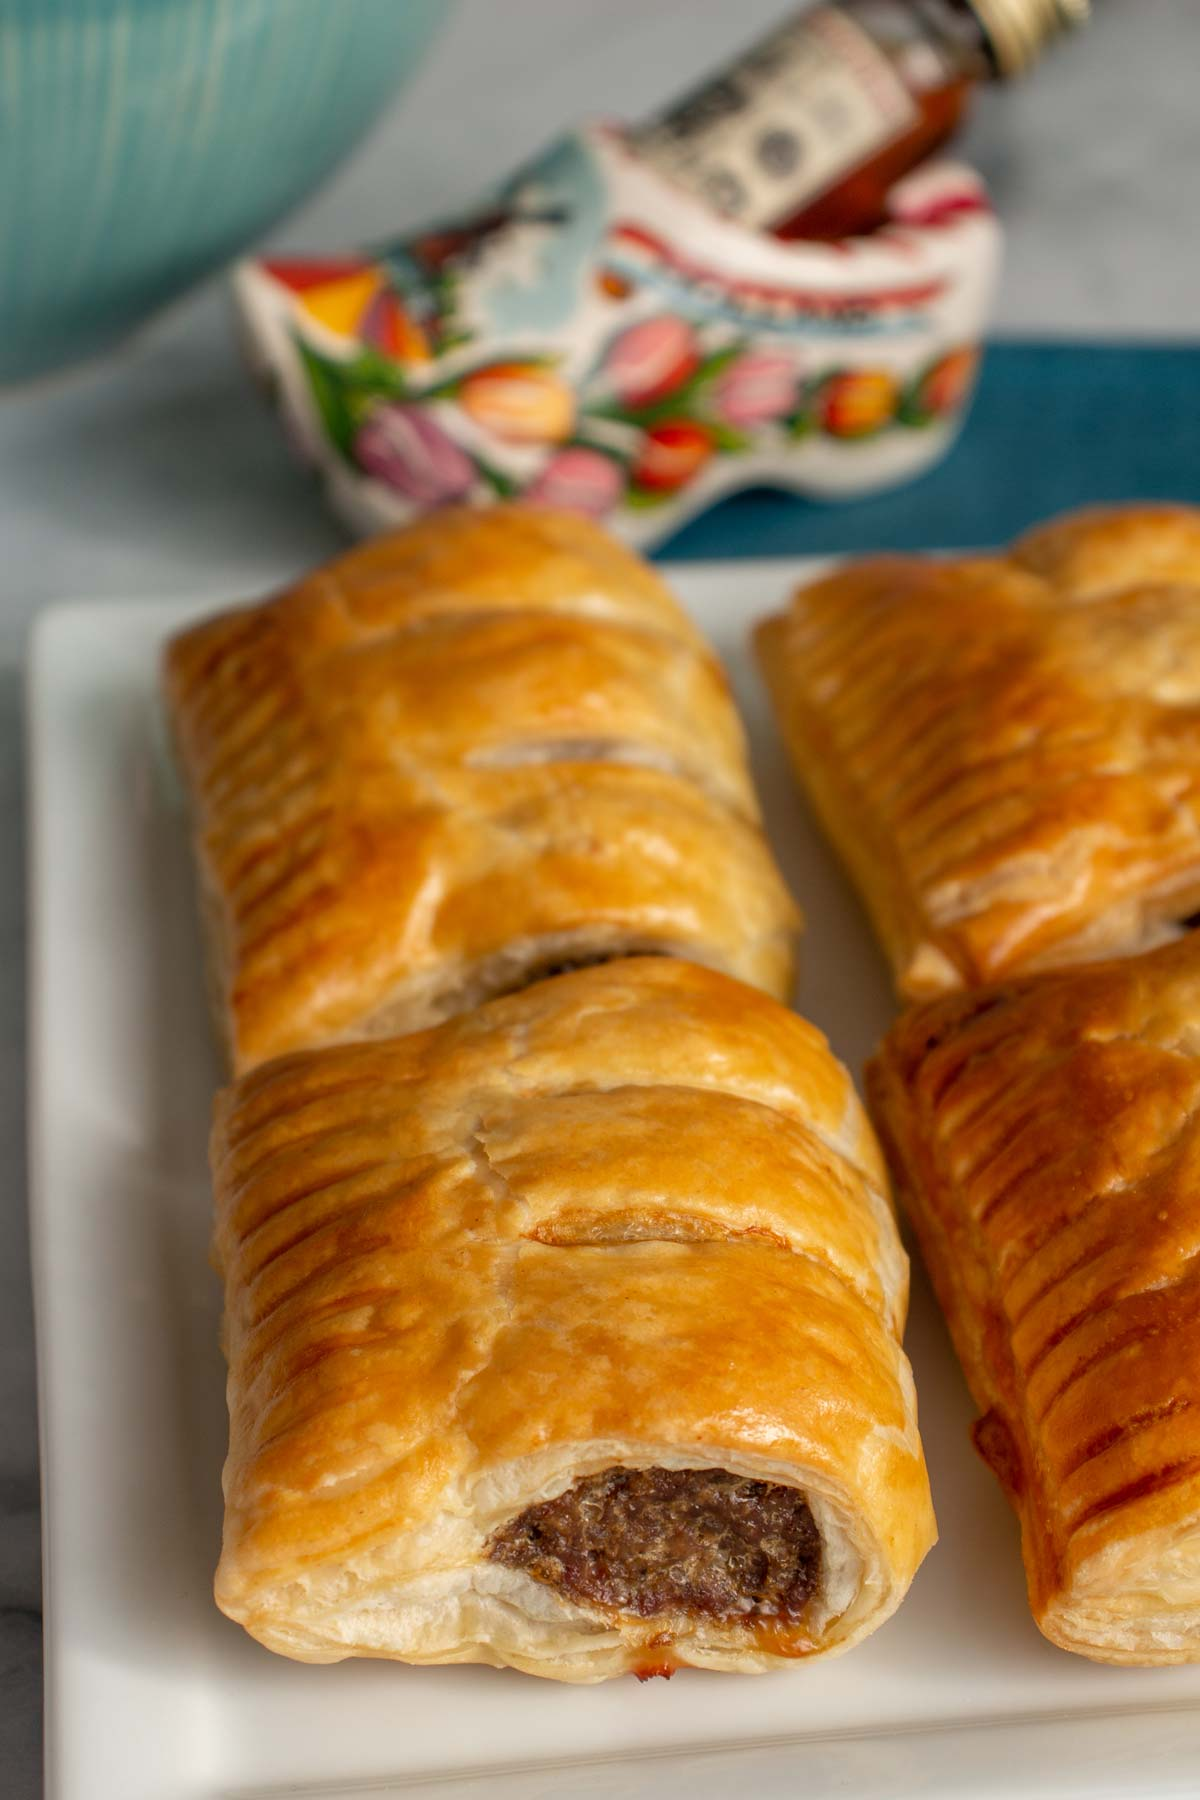 Closeup of Dutch sausage rolls on a plate with a wooden shoe figurine in the background.